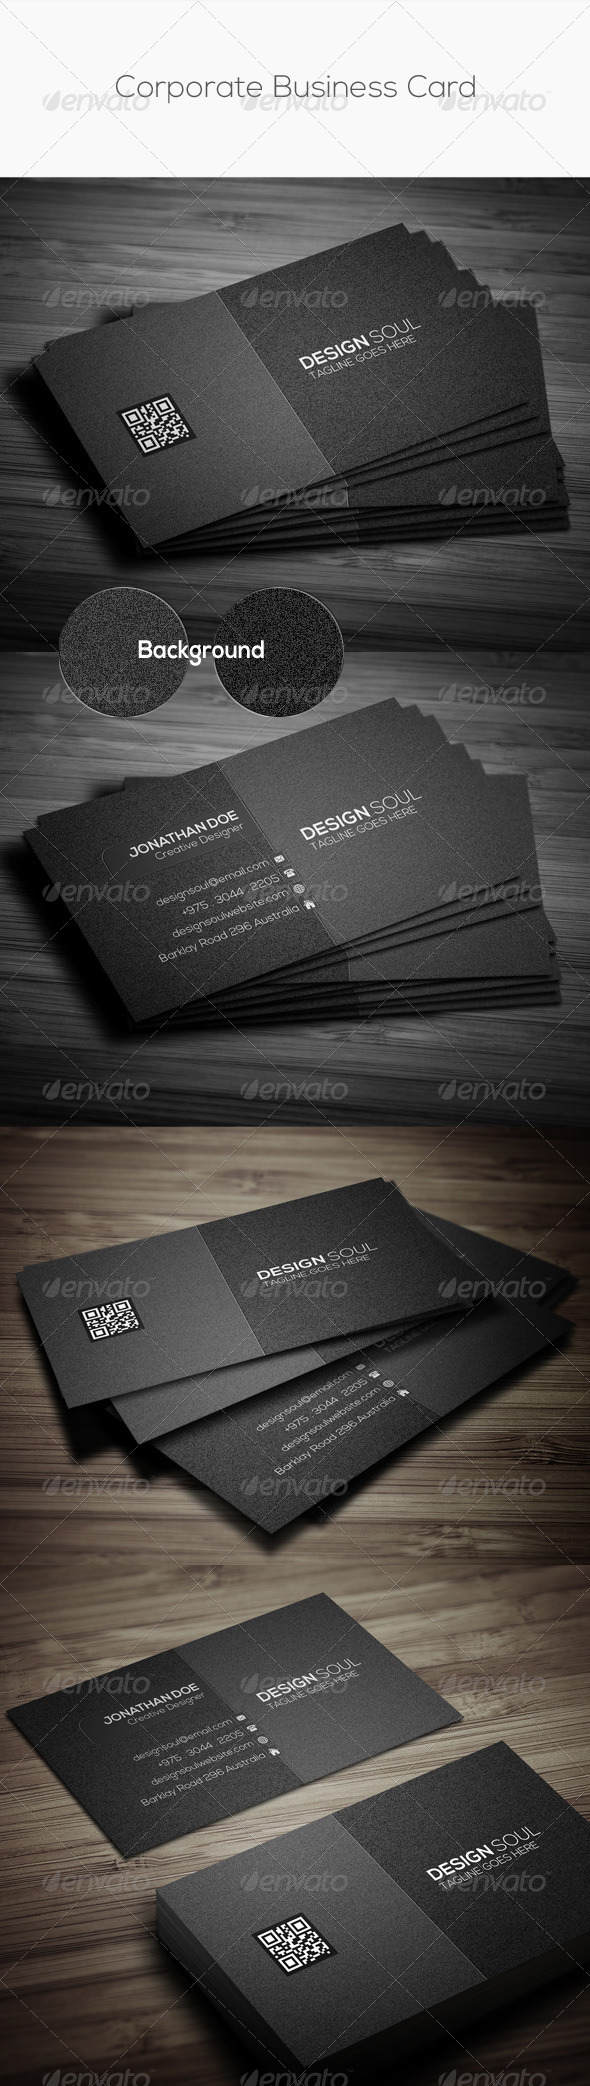 GraphicRiver Corporate Business Card 8713690